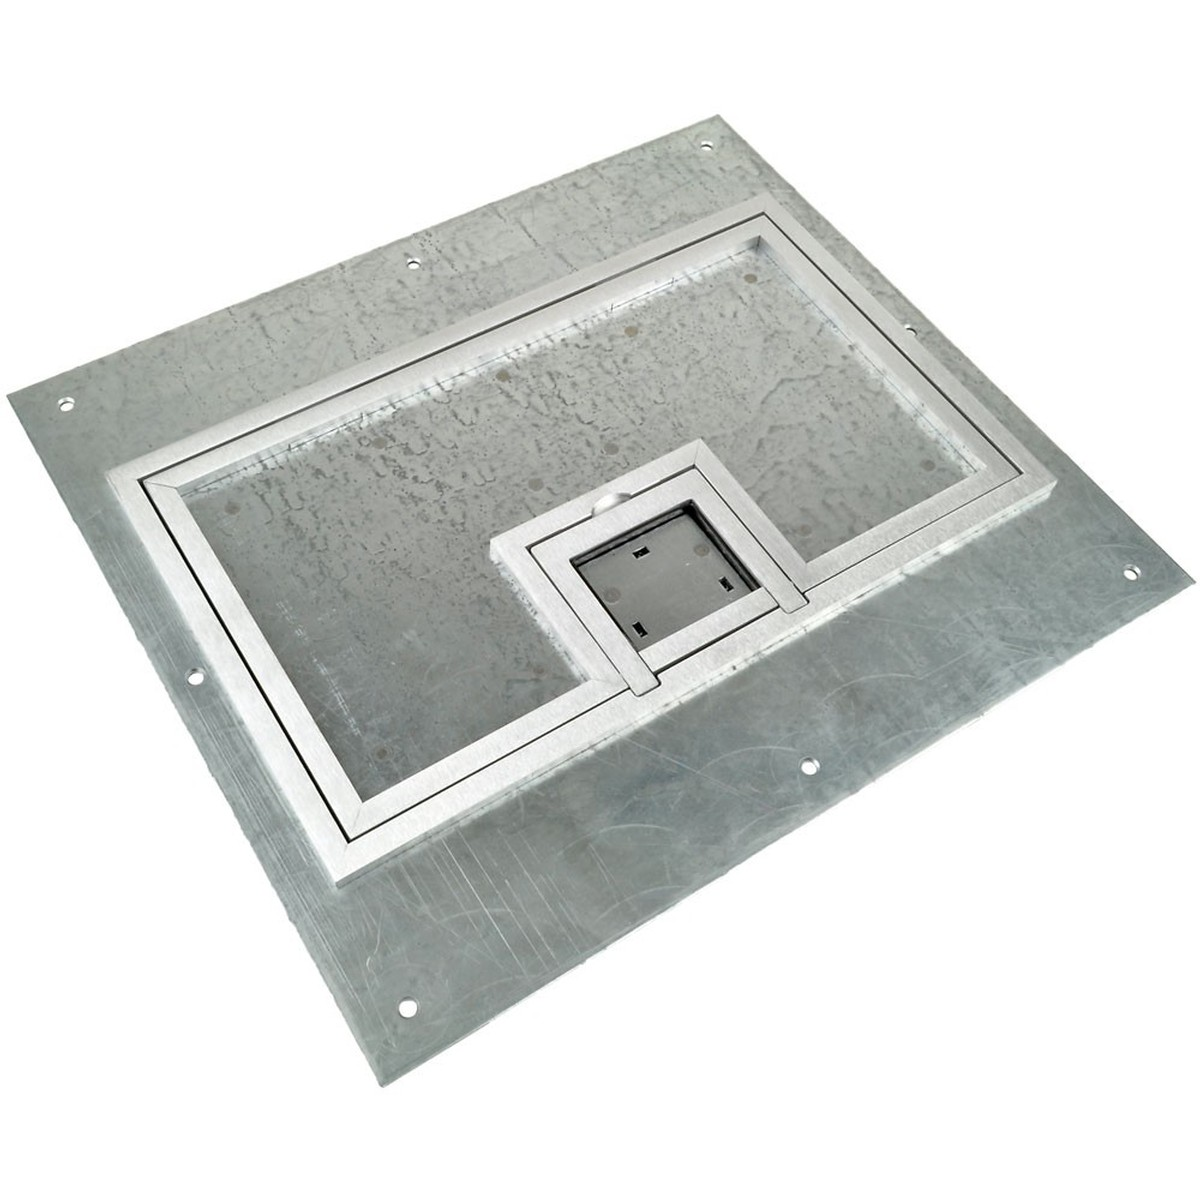 Fsr fl 600p ssq c cover w 1 4 square silver carpet for 1 inch square floor flange